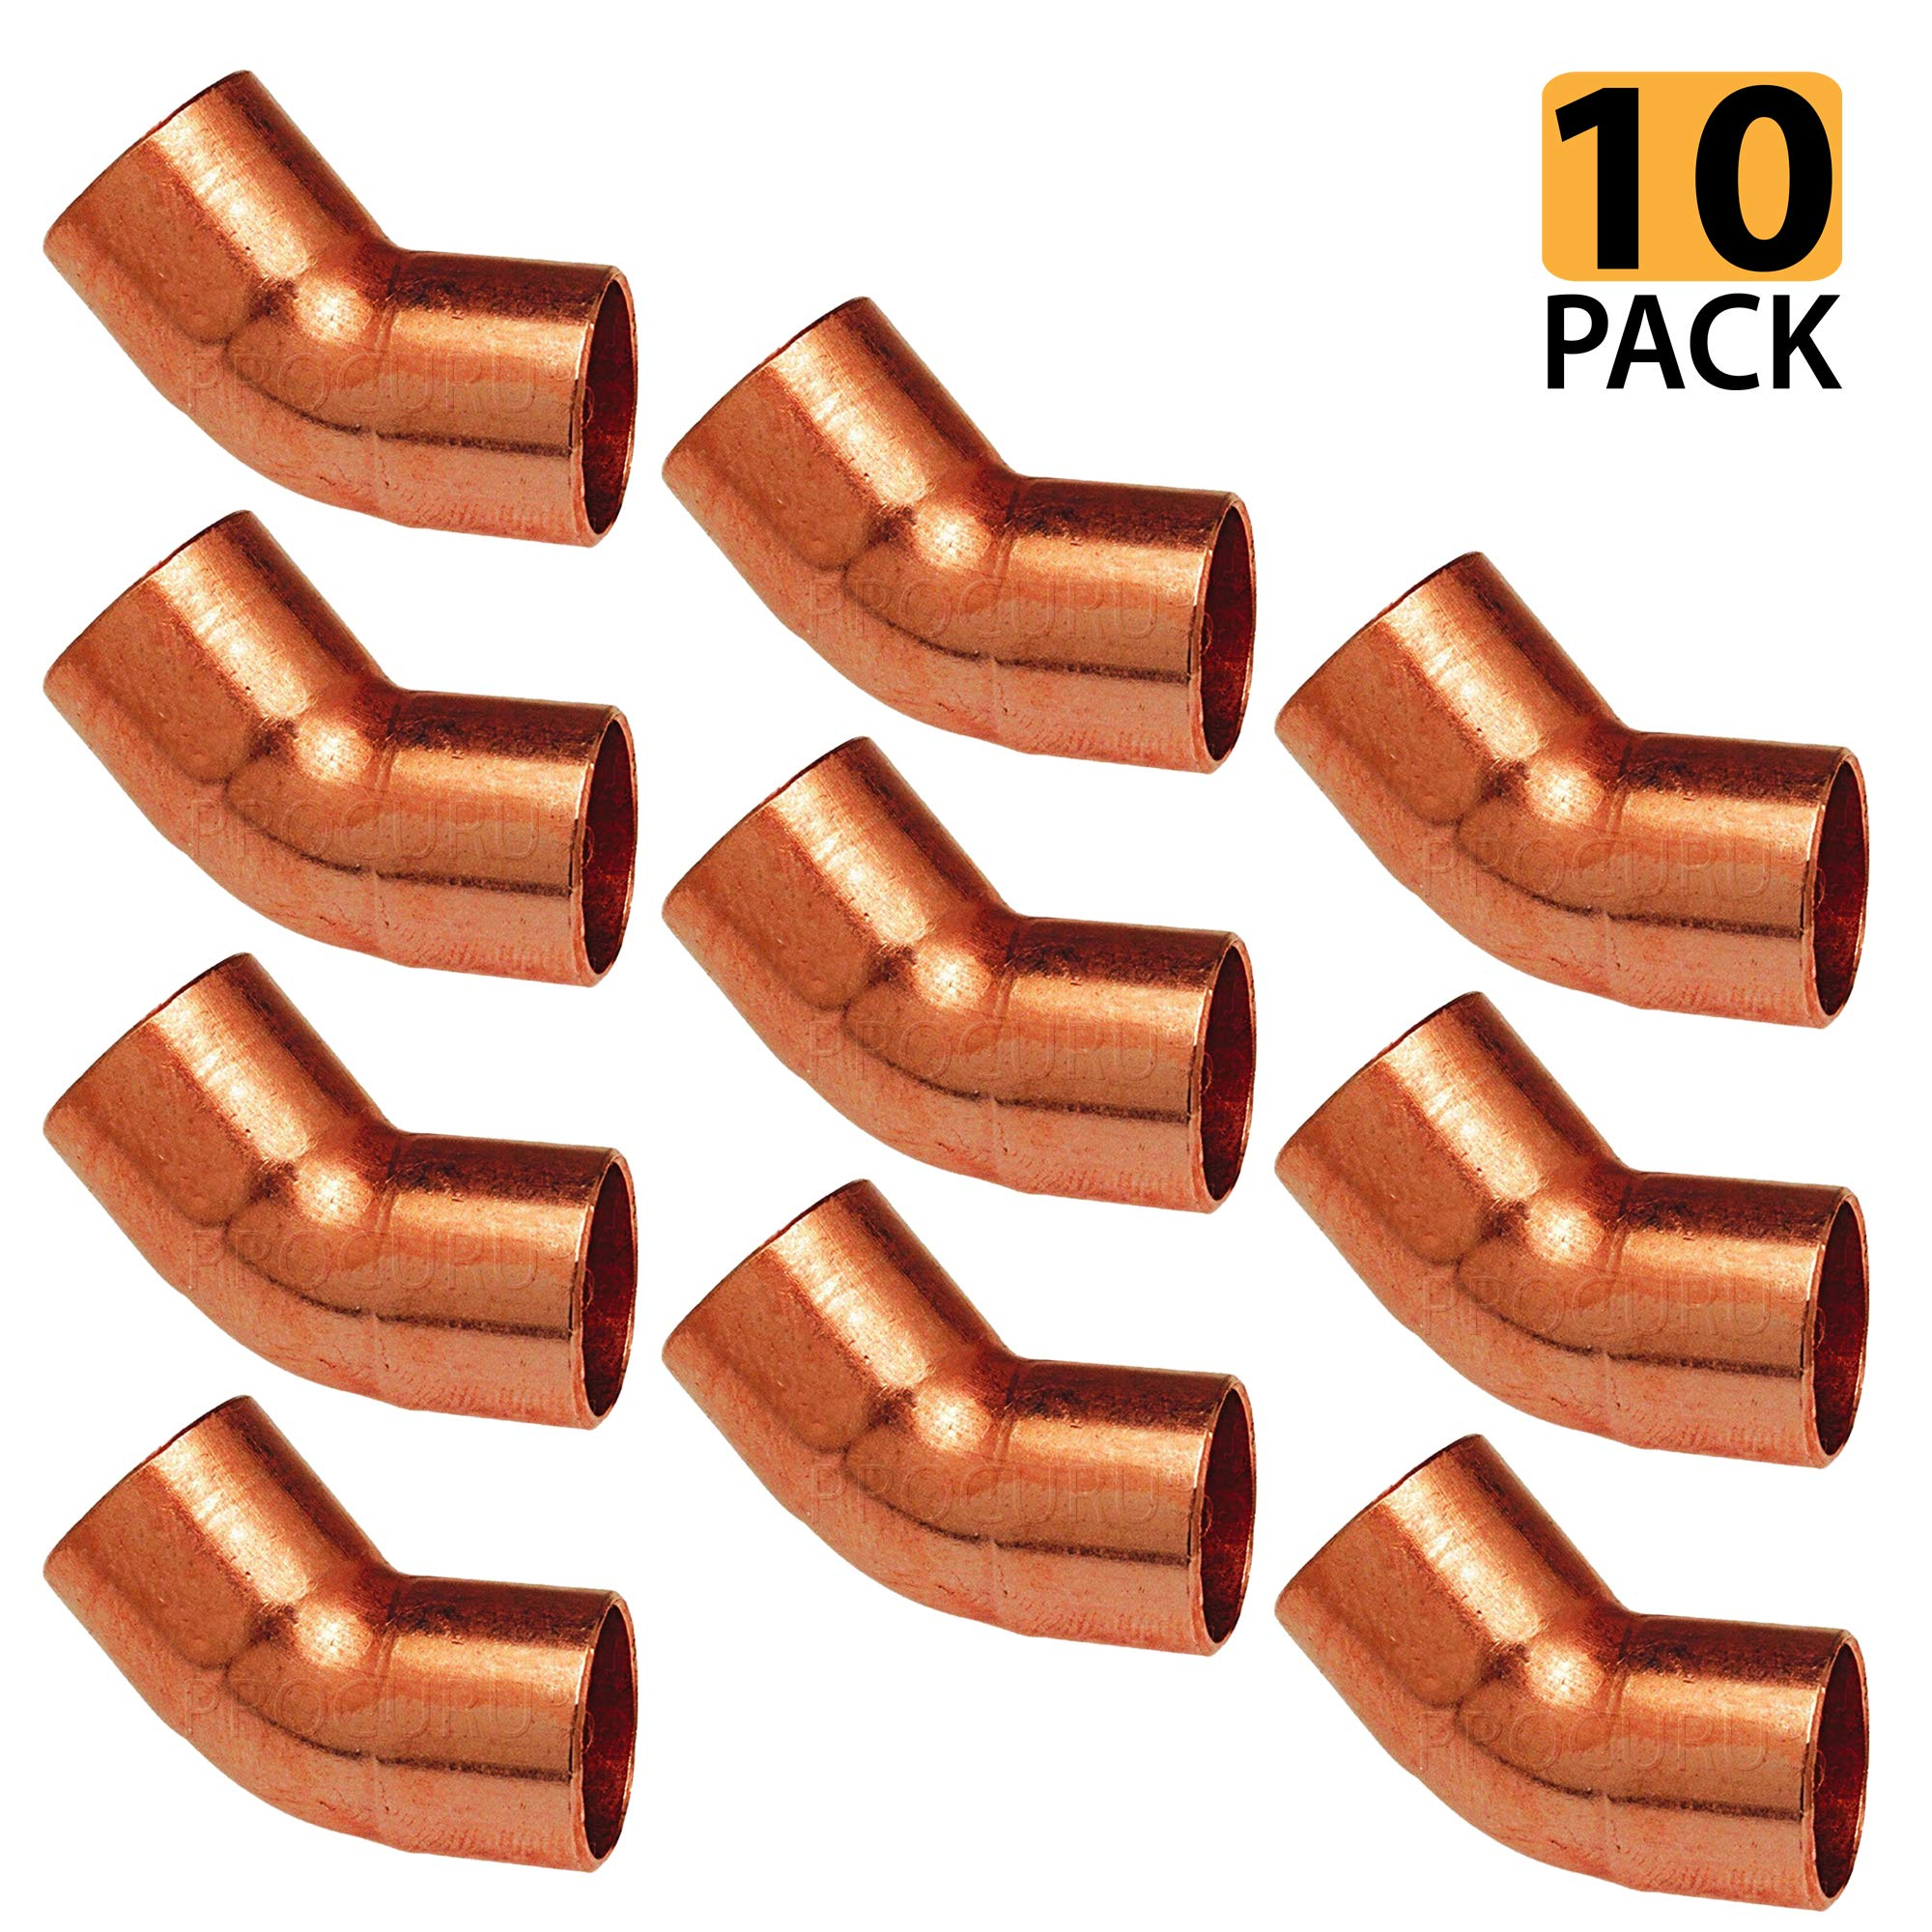 [10-Pack] PROCURU 3/4-Inch Copper 45-Degree Elbow CxC | Professional Grade Plumbing Copper Fitting, NSF Lead Free Certified (3/4-inch (0.75''), 10-Pack)